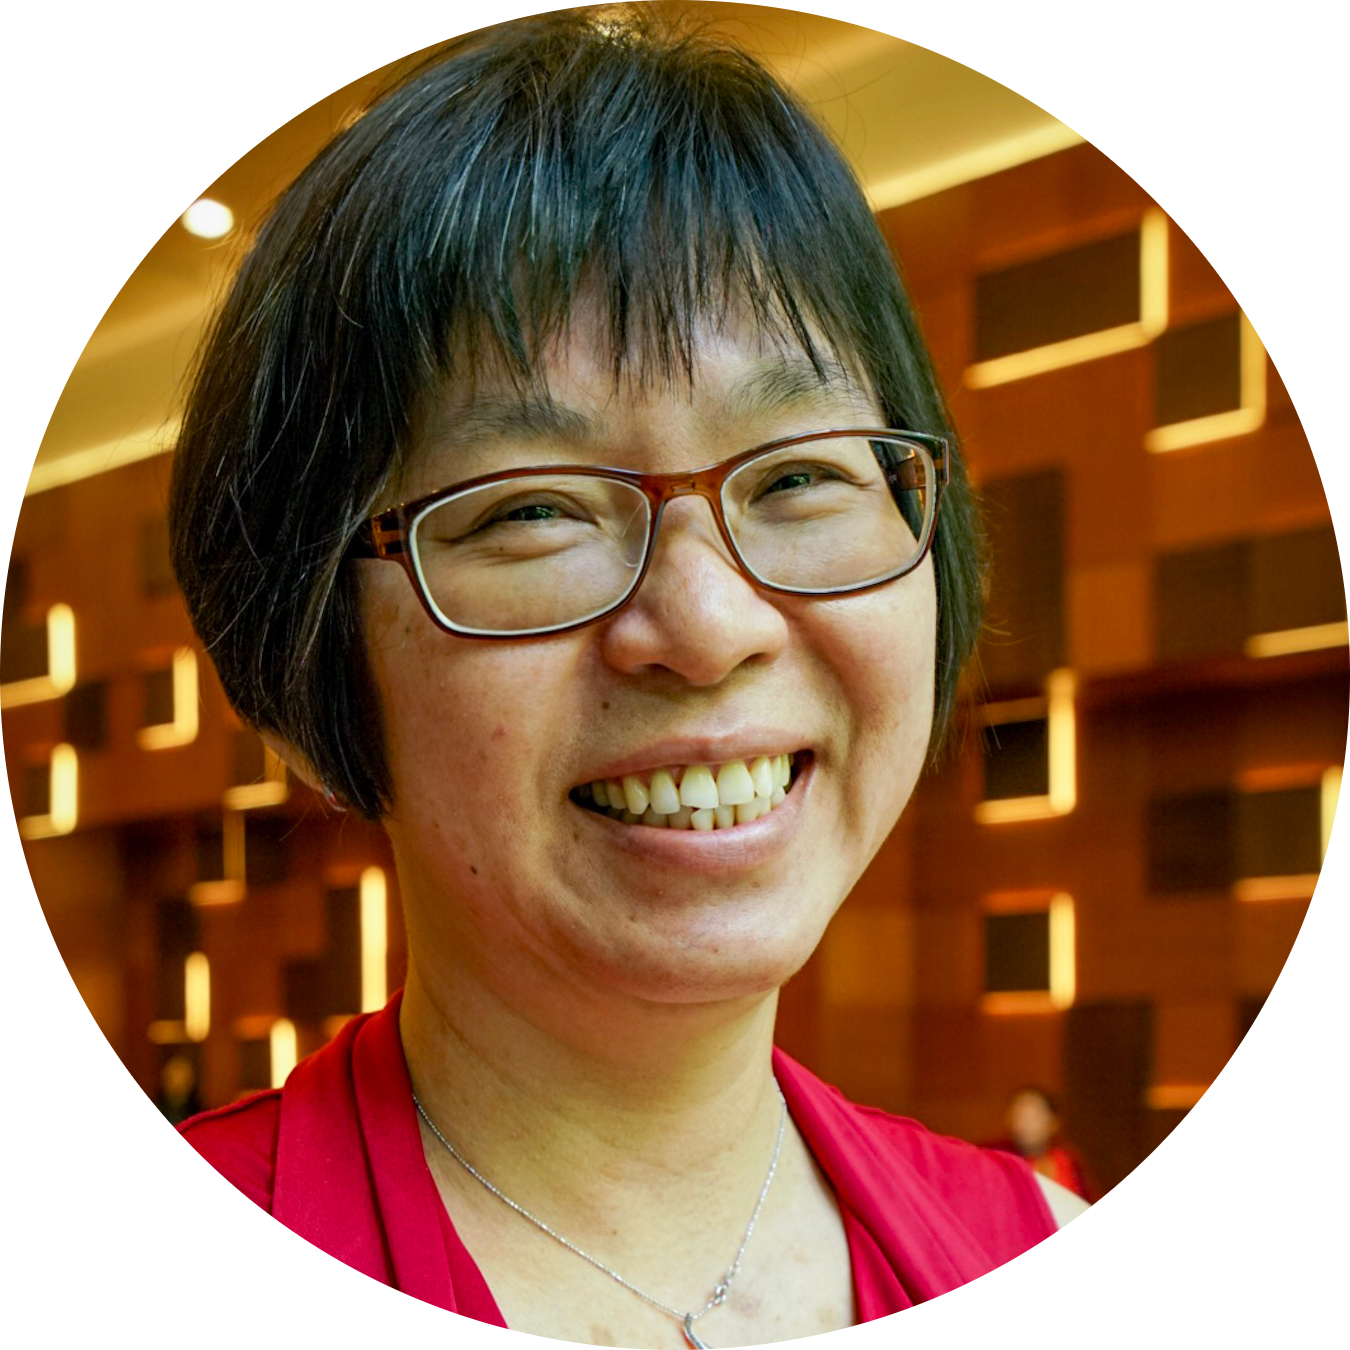 Sister Seah Chiew Kwan : Lecturer